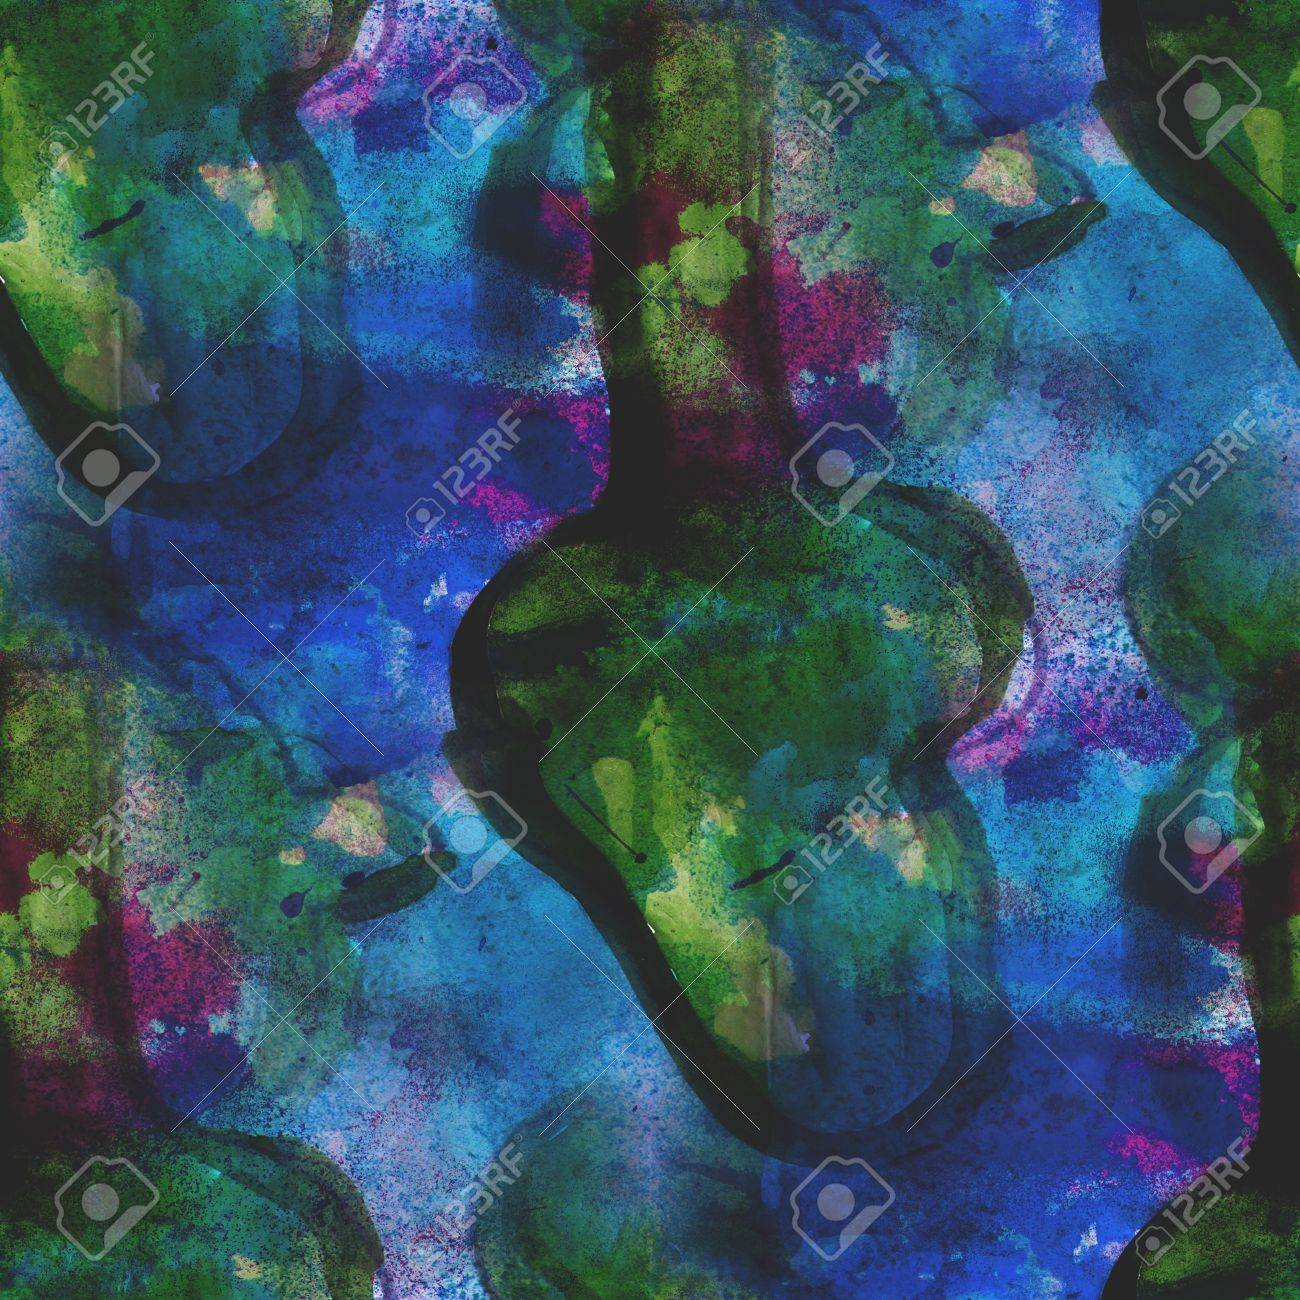 Blue Green Seamless Cubism Abstract Art Picasso Texture Watercolor Wallpaper Background Stock Photo